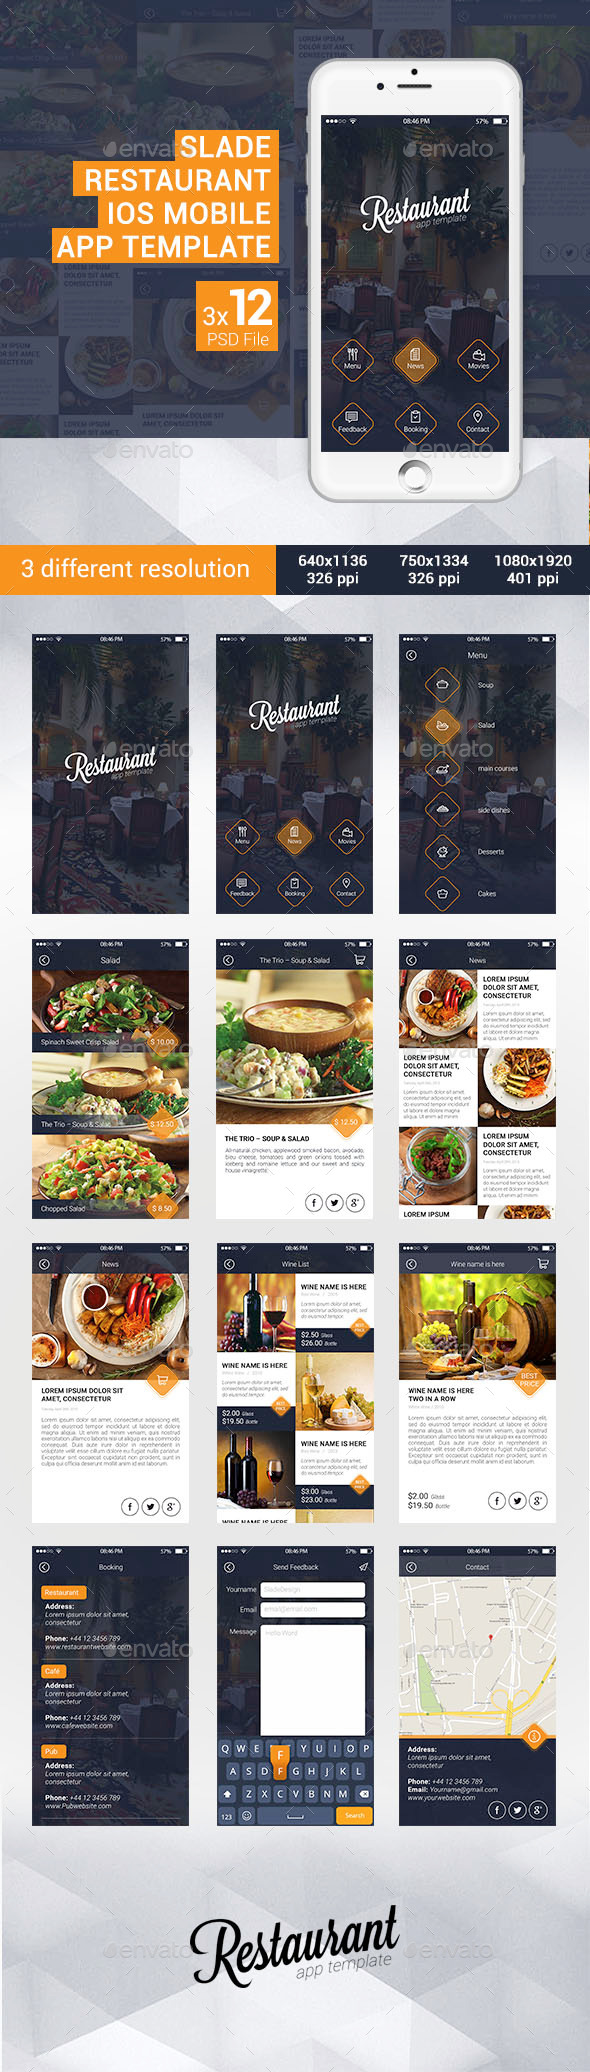 GraphicRiver Slade Restaurant iOS Mobile App Template 11299926